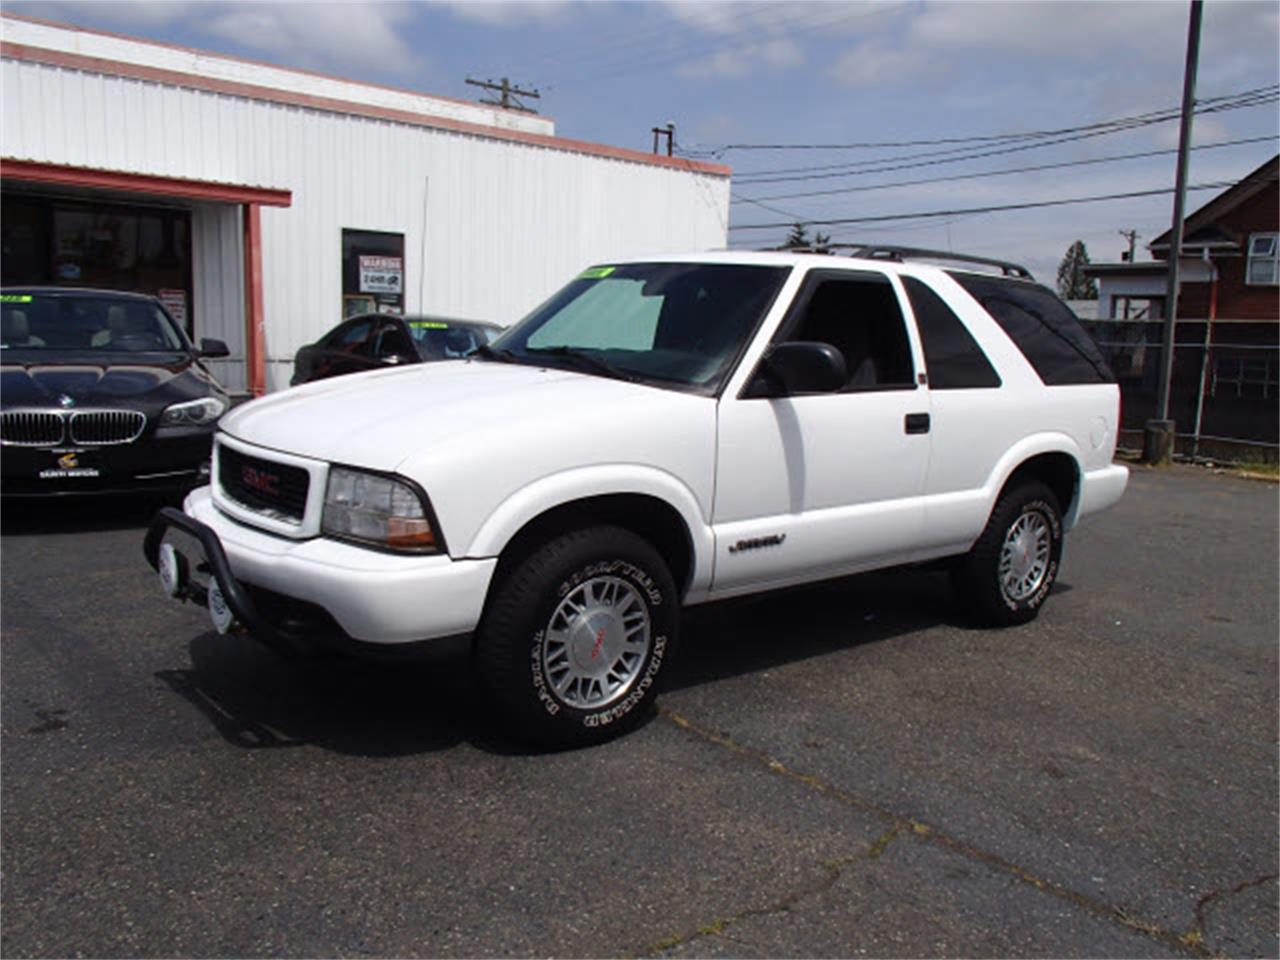 2001 Gmc Jimmy For Sale Classiccars Com Cc 1096764